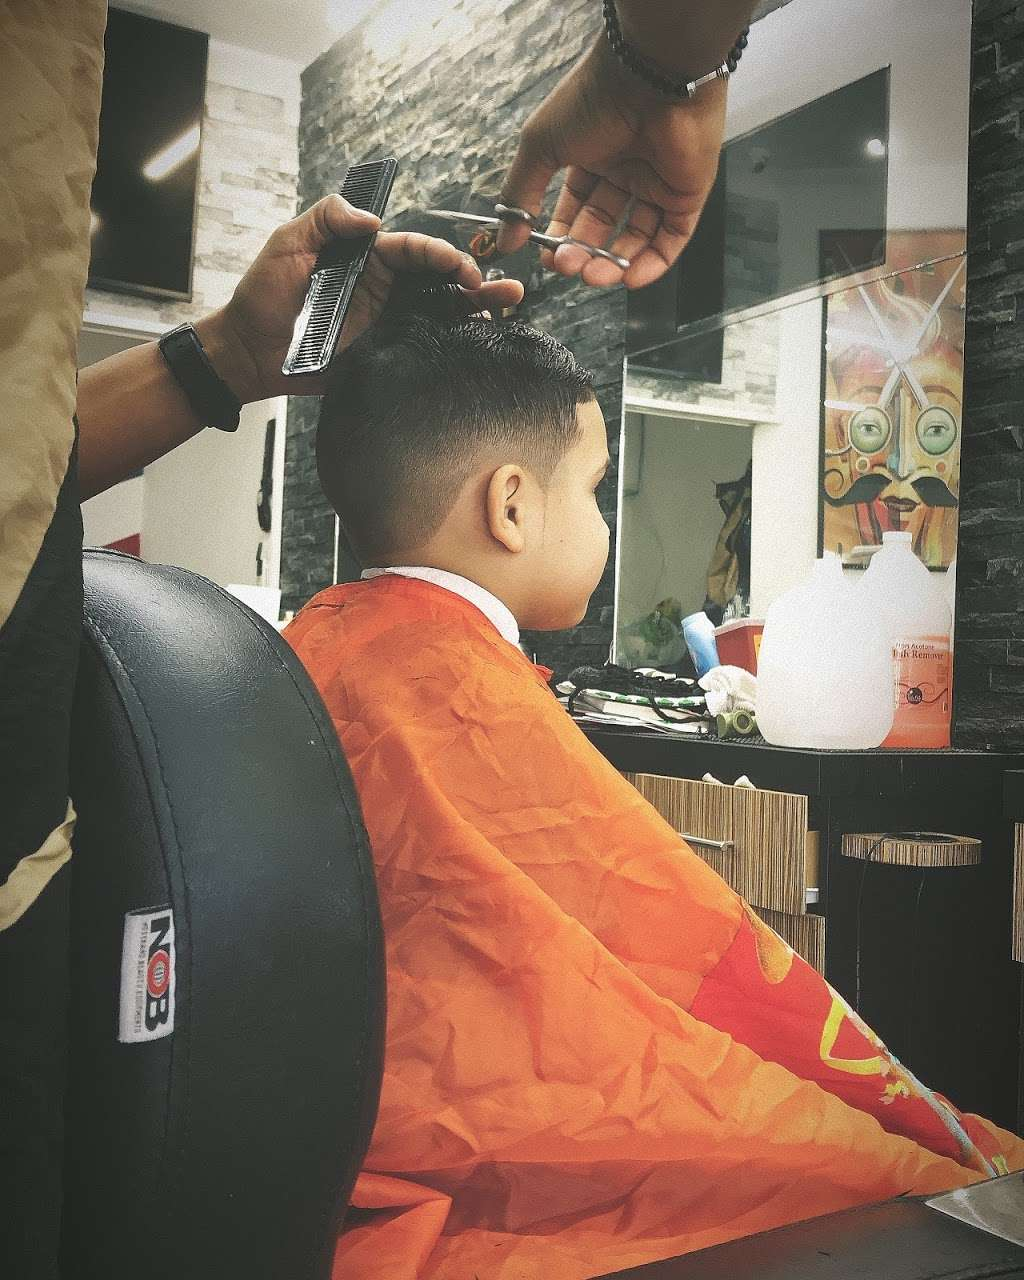 High Qualitys Barber Shop - hair care  | Photo 7 of 10 | Address: 390 E Tremont Ave, Bronx, NY 10457, USA | Phone: (347) 990-7997